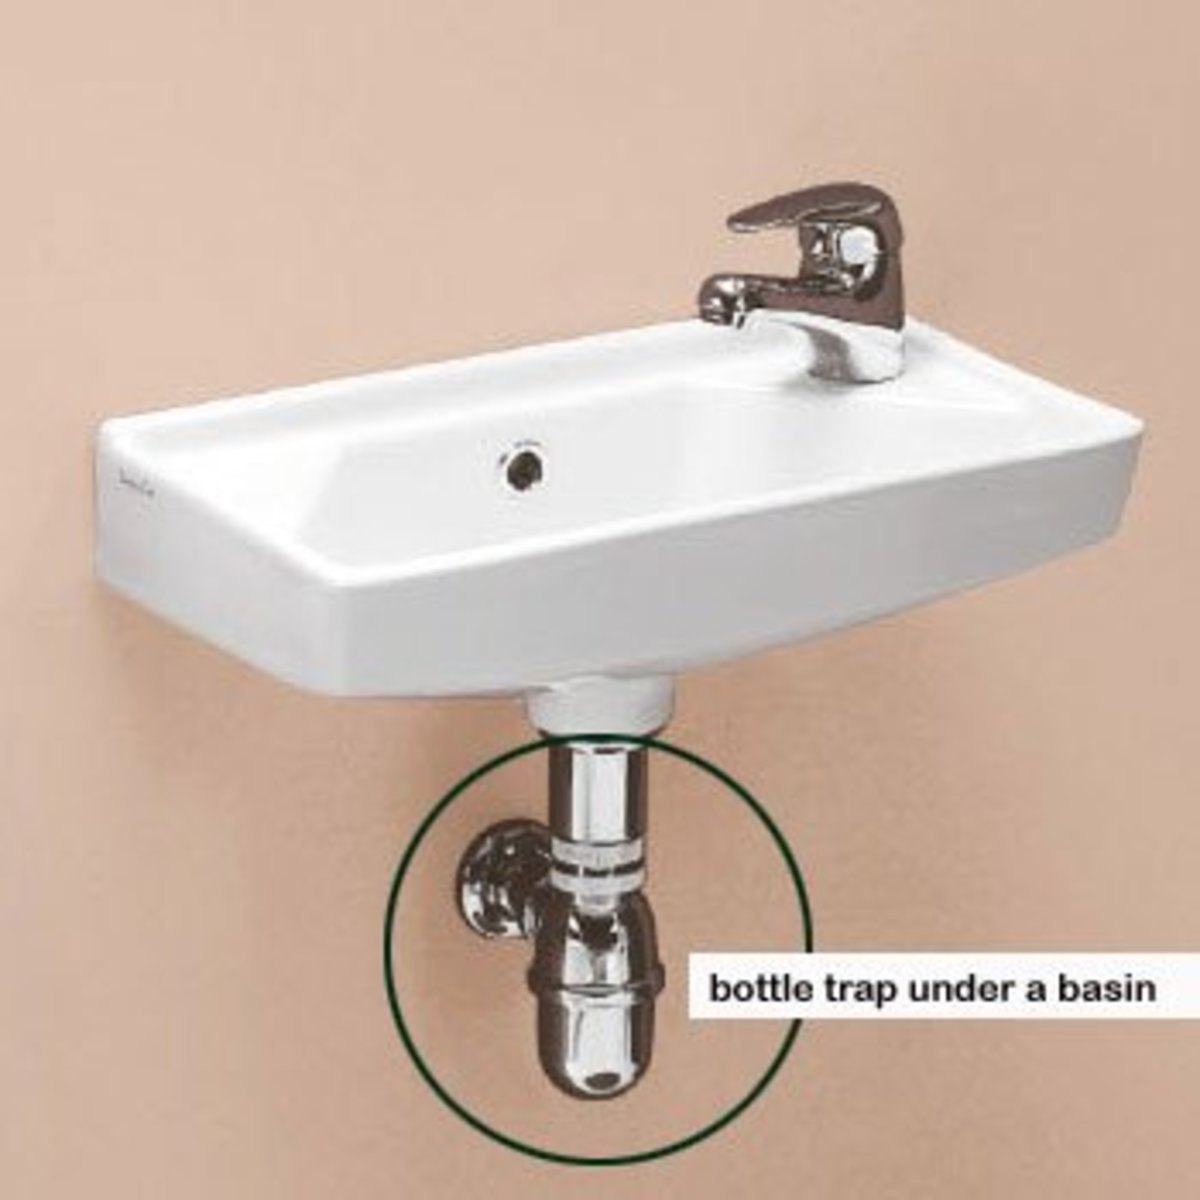 Why Do We Need Bottle Traps for Wash Basins?